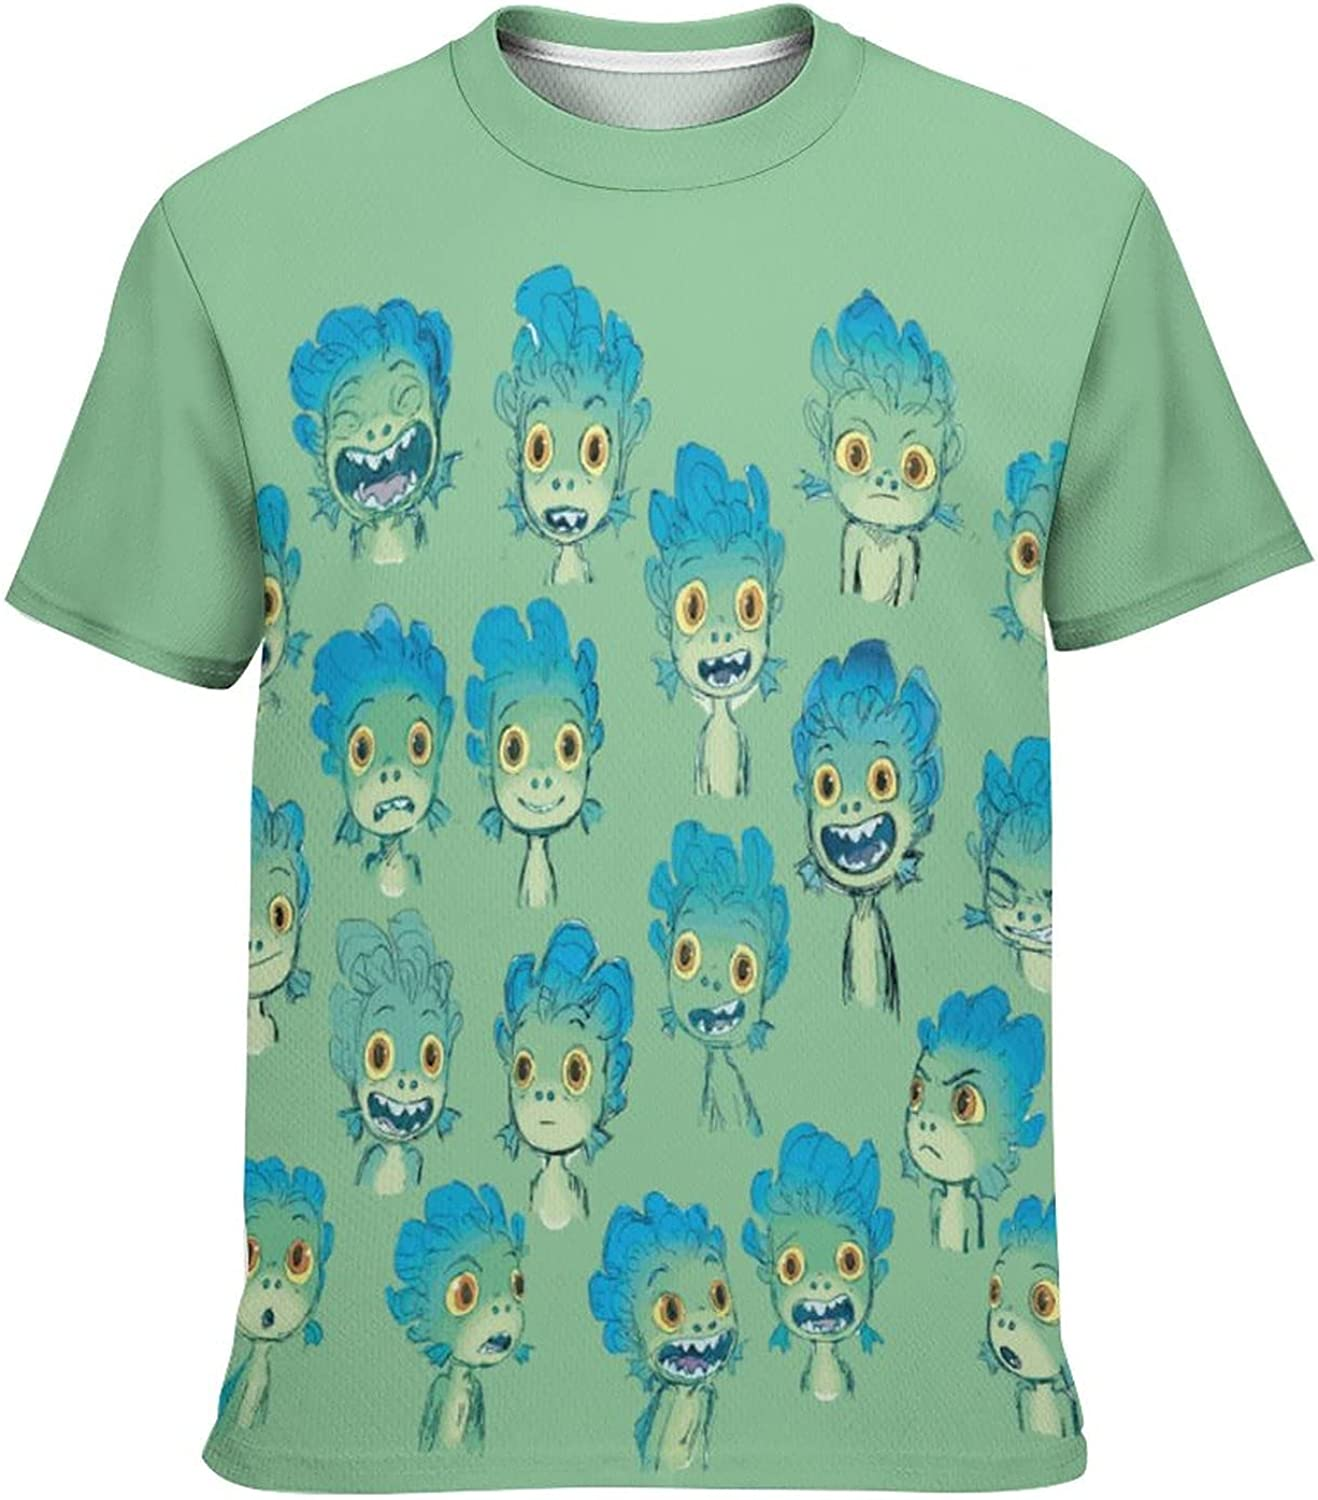 Kid's Novelty Graphic Round Neck Short Sleeve T-Shirt Cozy Trendy Tee Shirts Tops for Boys XS